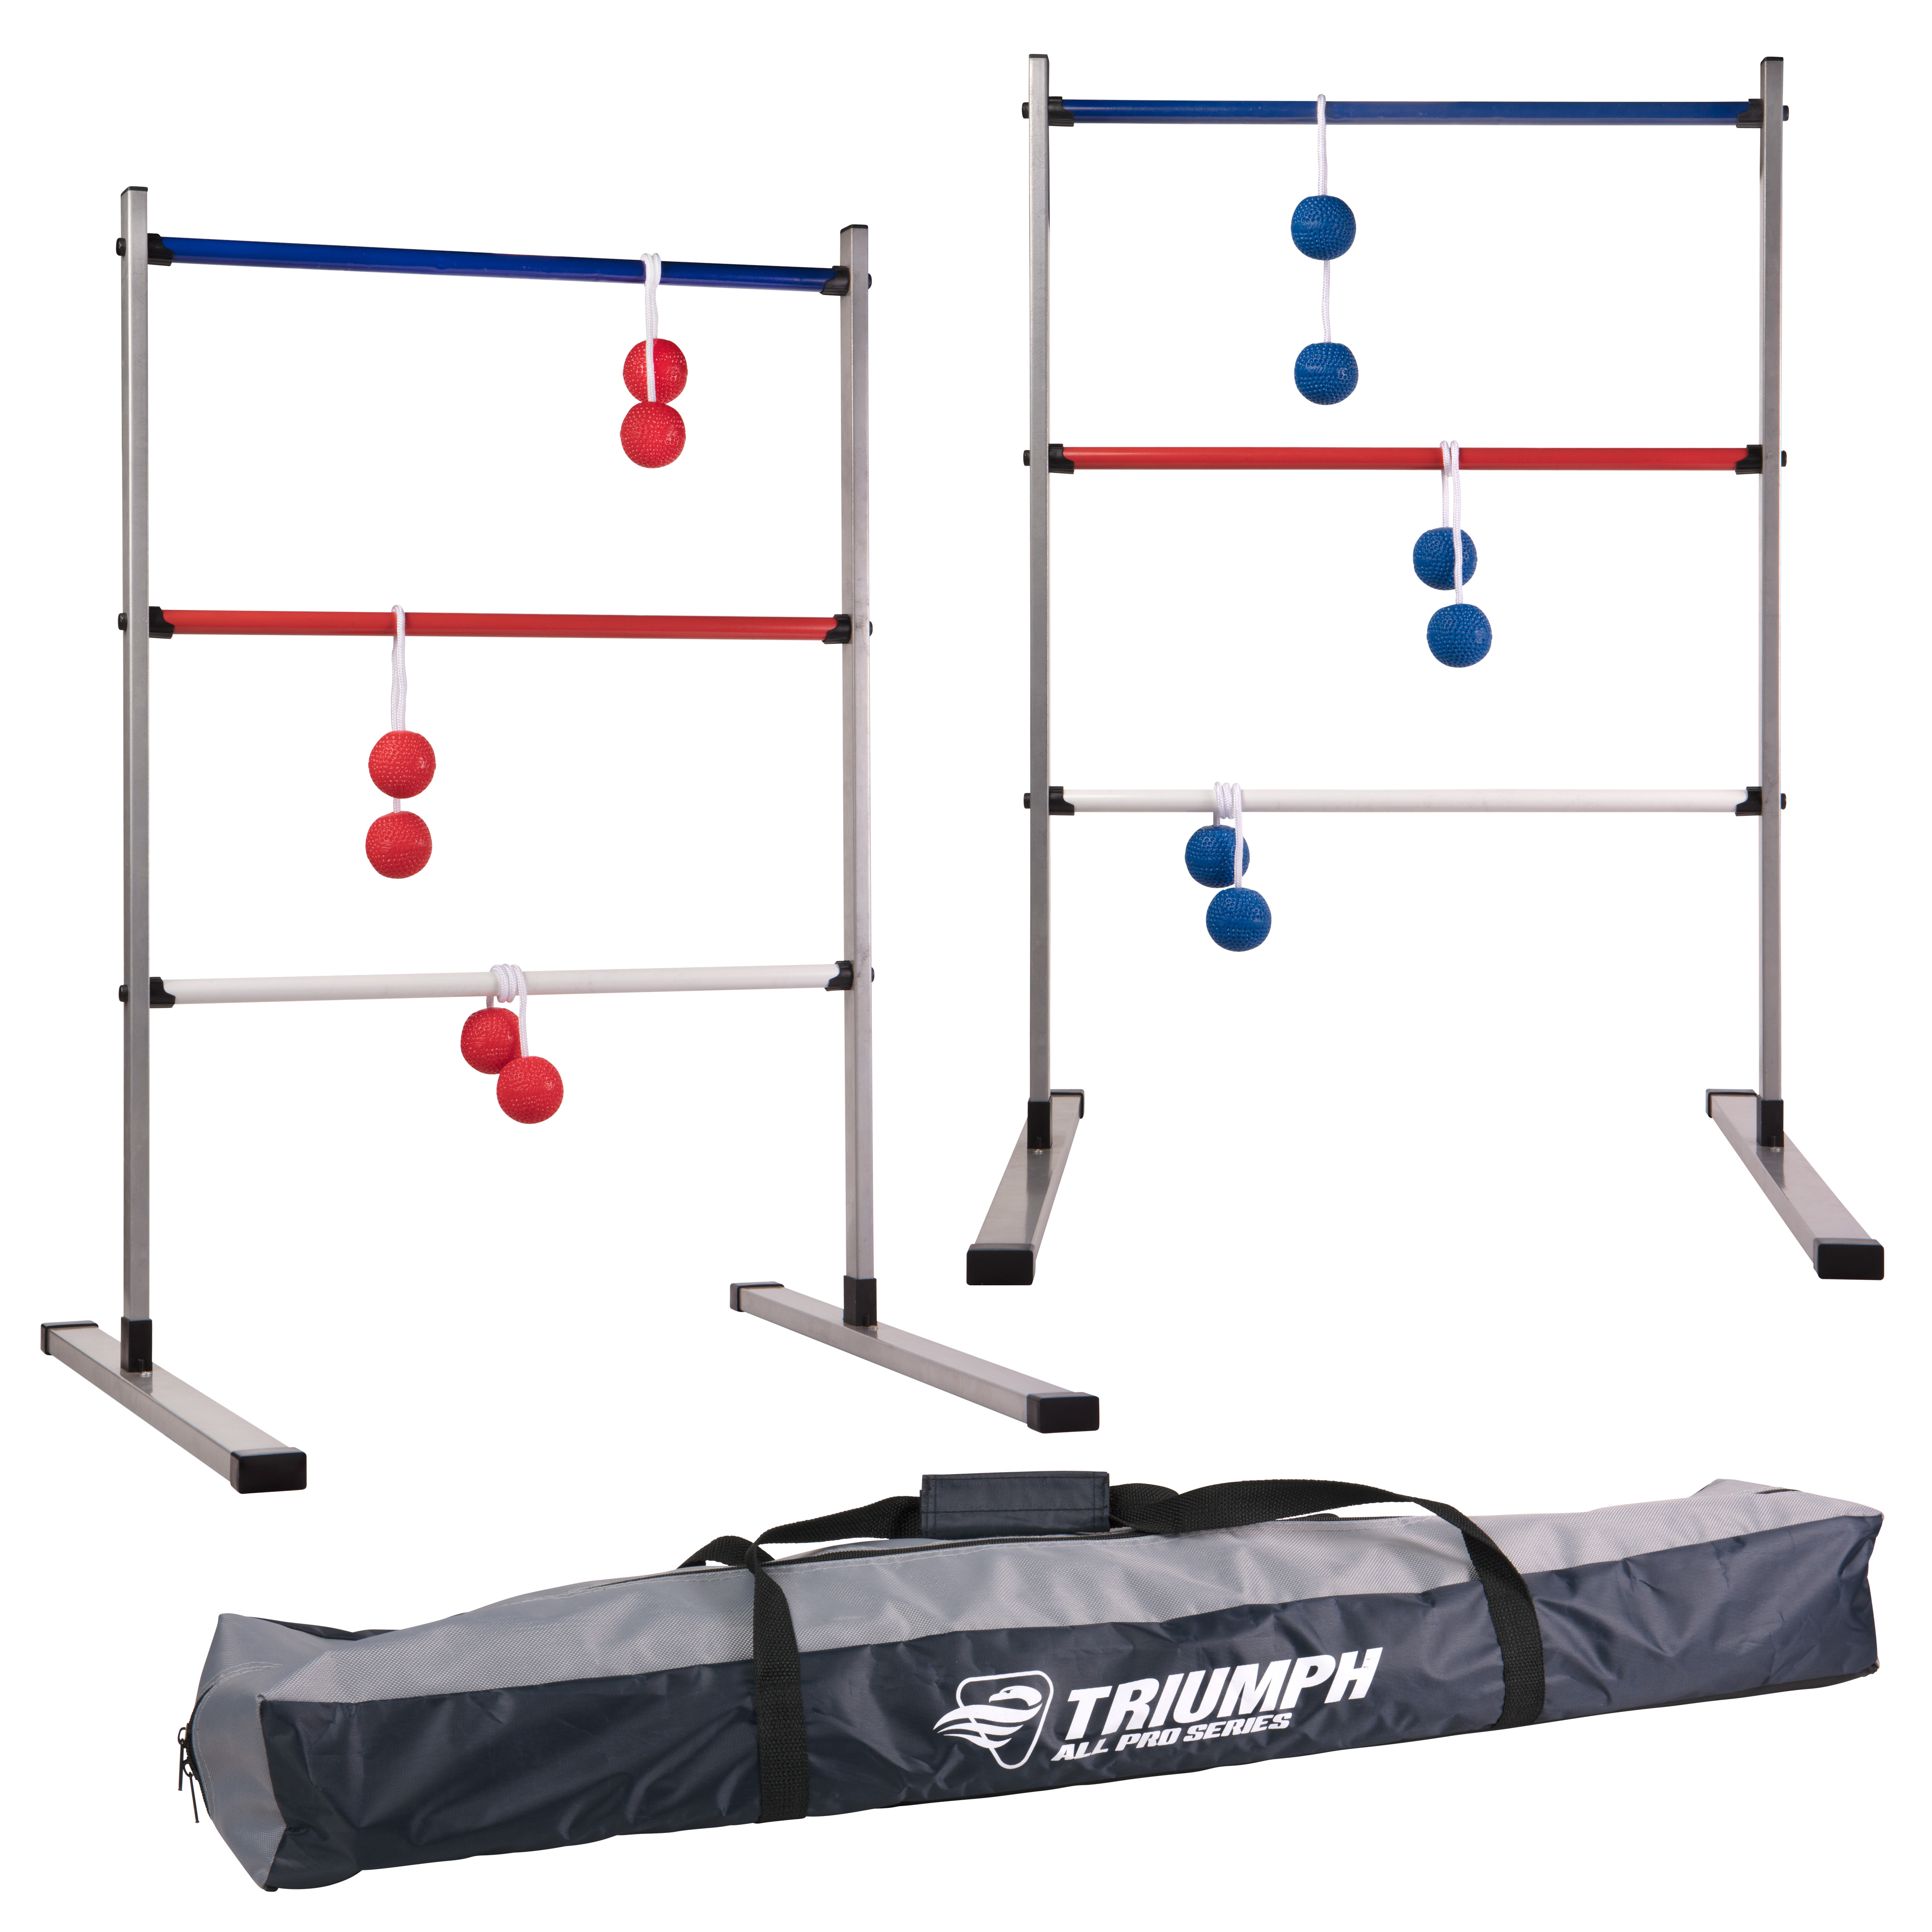 Triumph All Pro Series Press Fit Ladderball Set by Escalade Sports